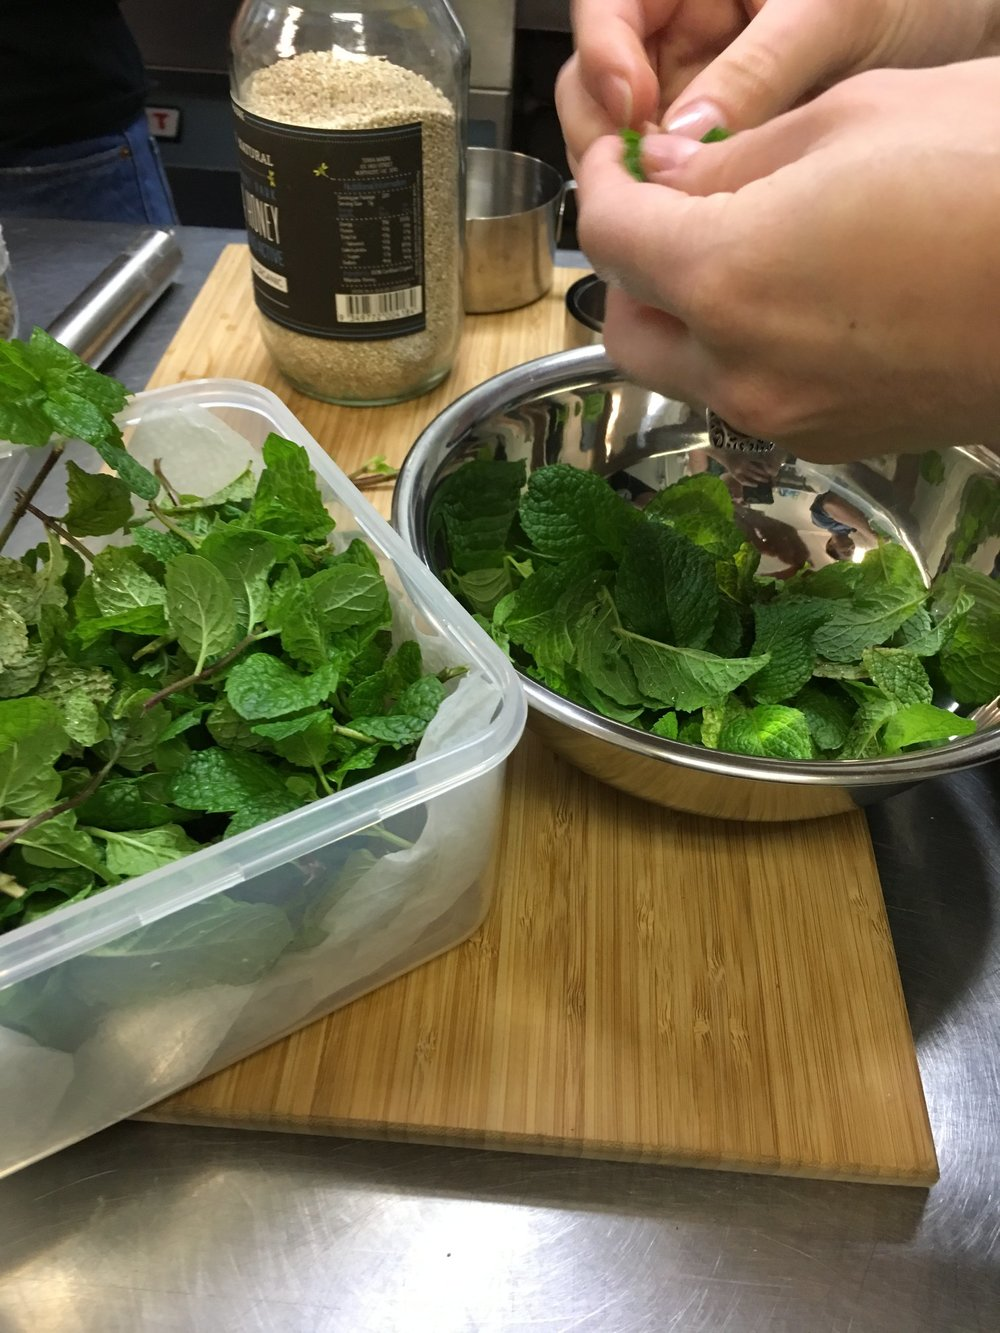 Locally sourced mint leaves being picked and washed in preparation for being added to the salad.